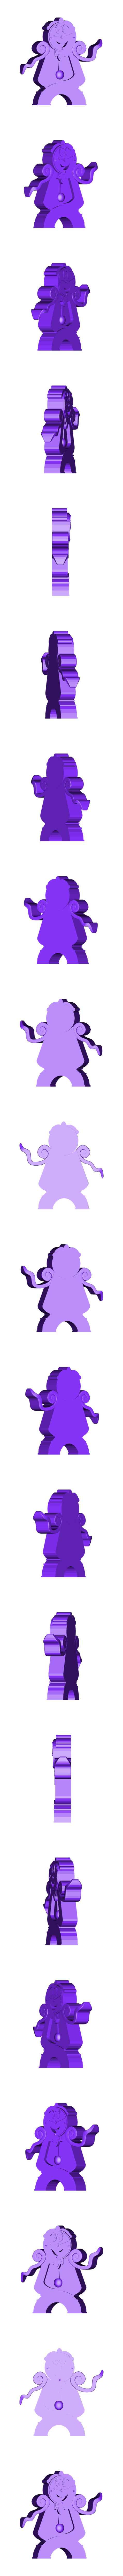 Cogsworth.stl Download free STL file Cogsworth and Friends • 3D printer design, mrhers2